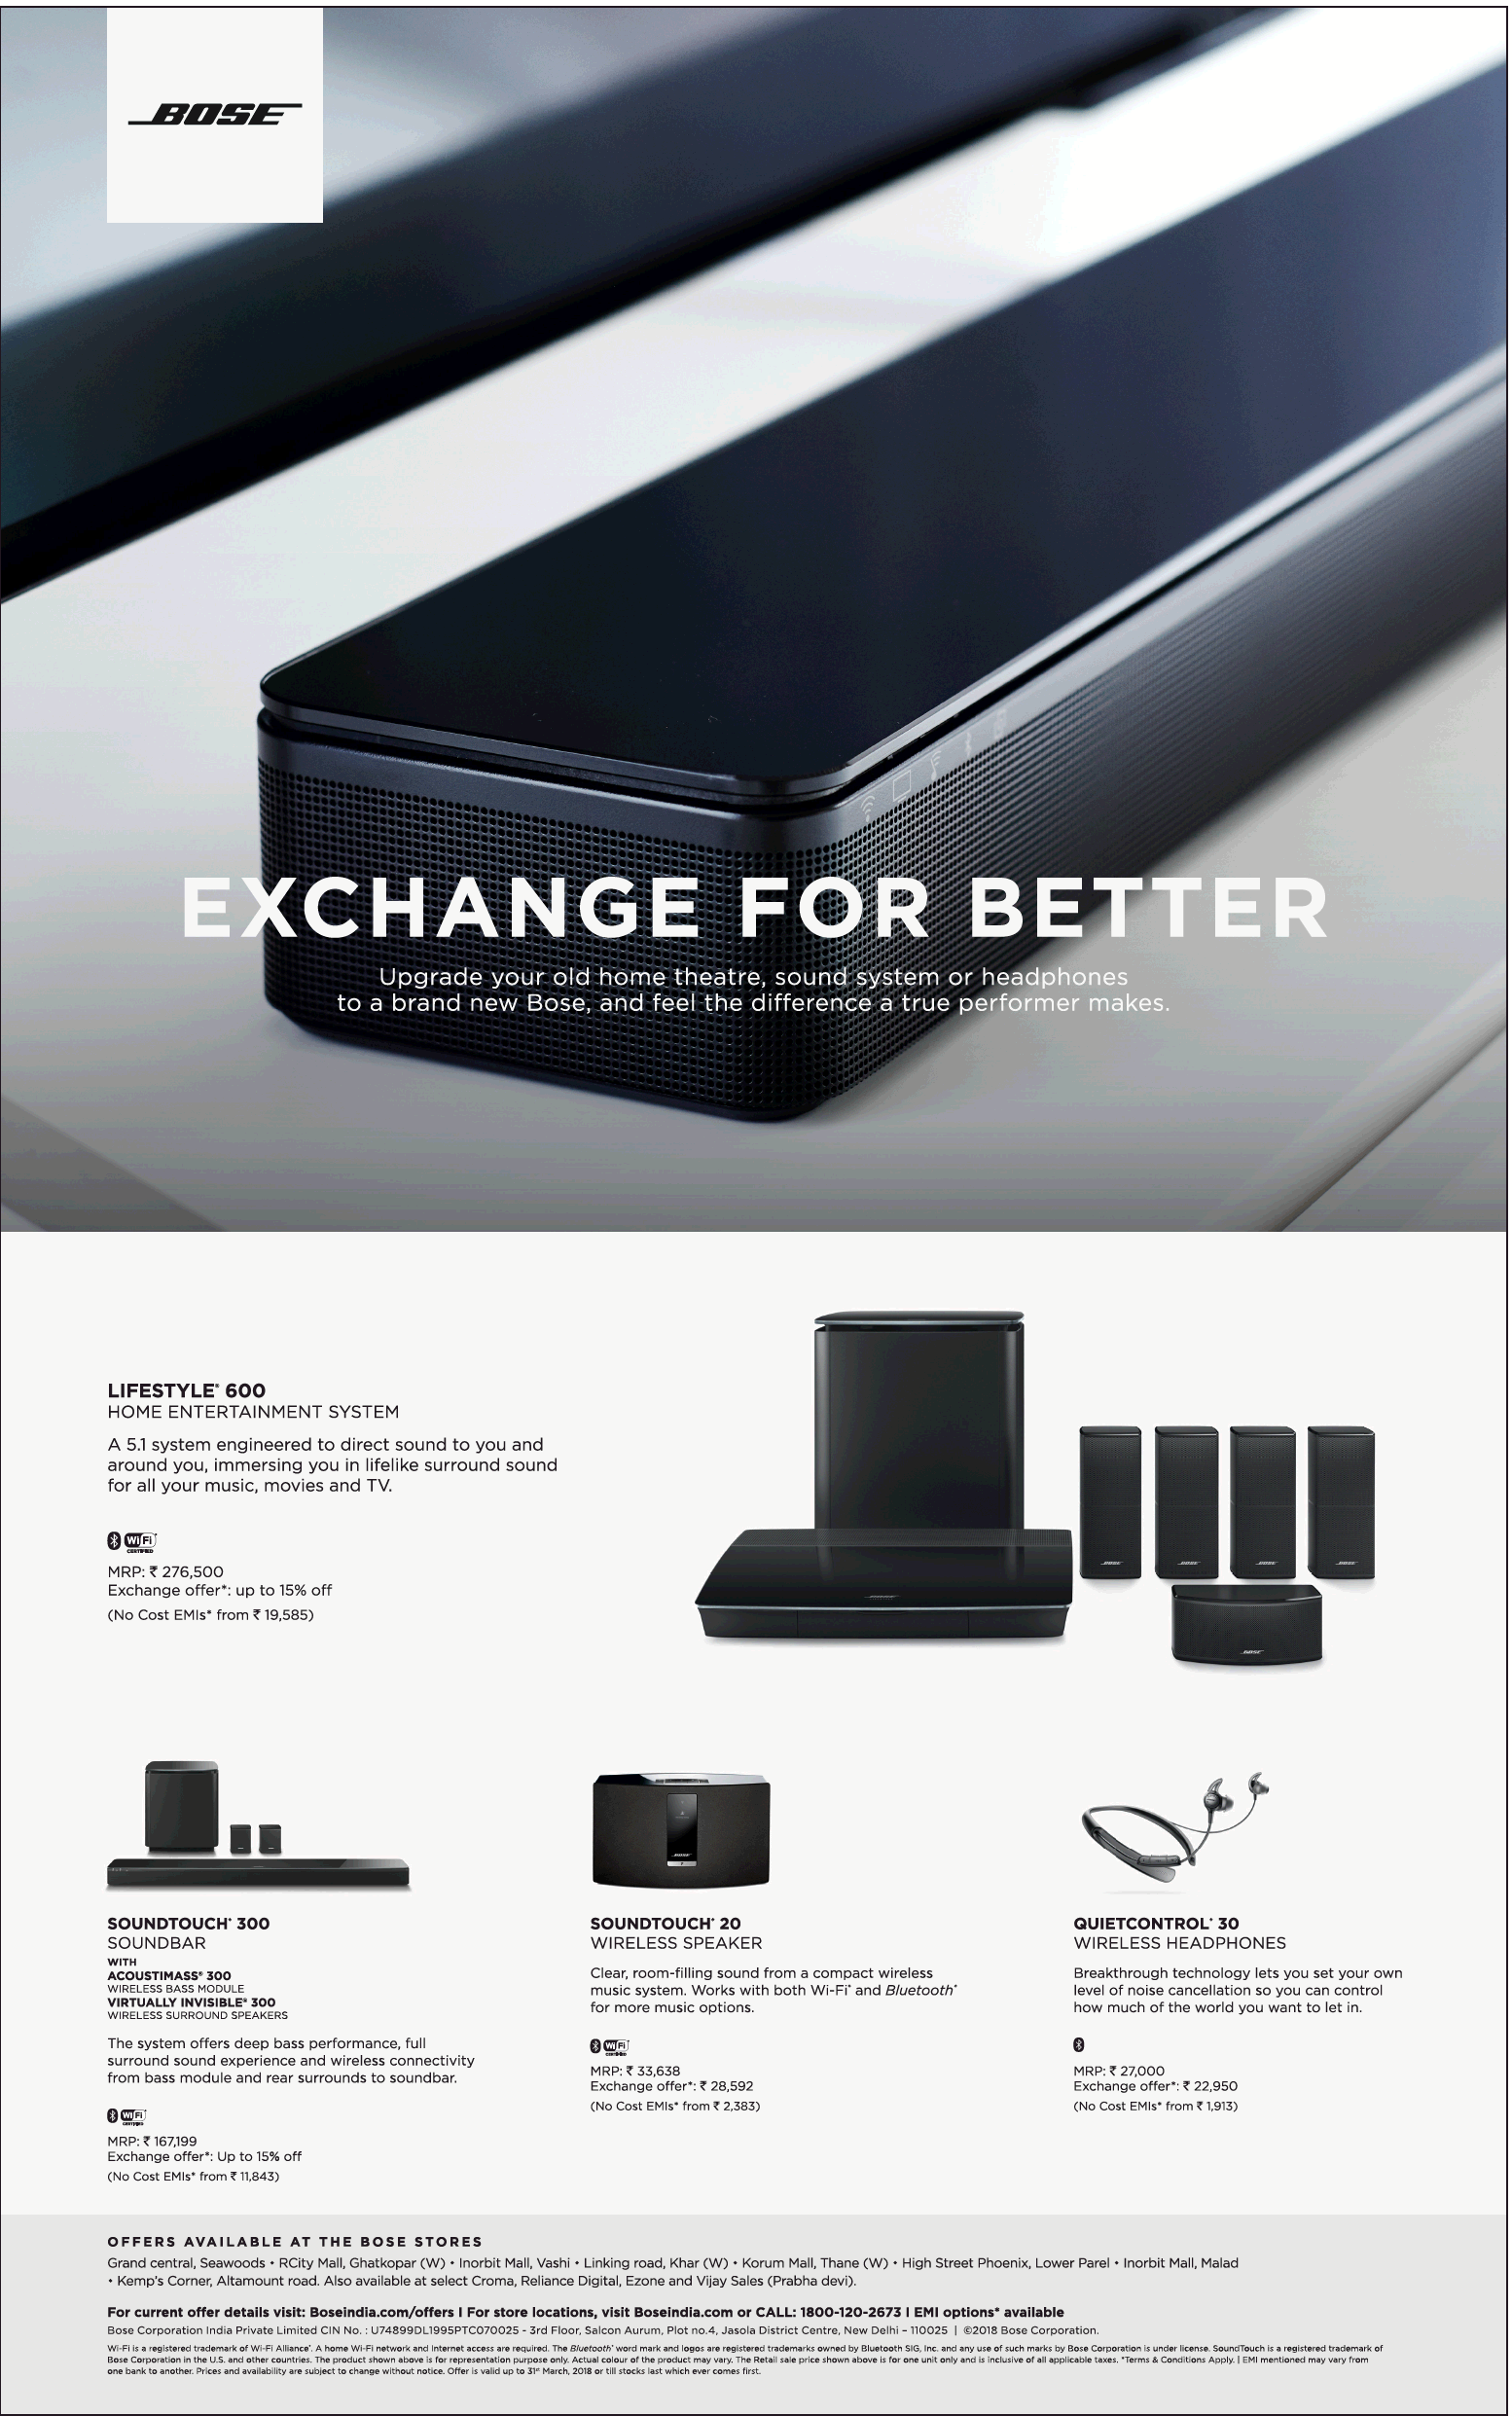 Bose Sound Systems Exchange For Better Ad